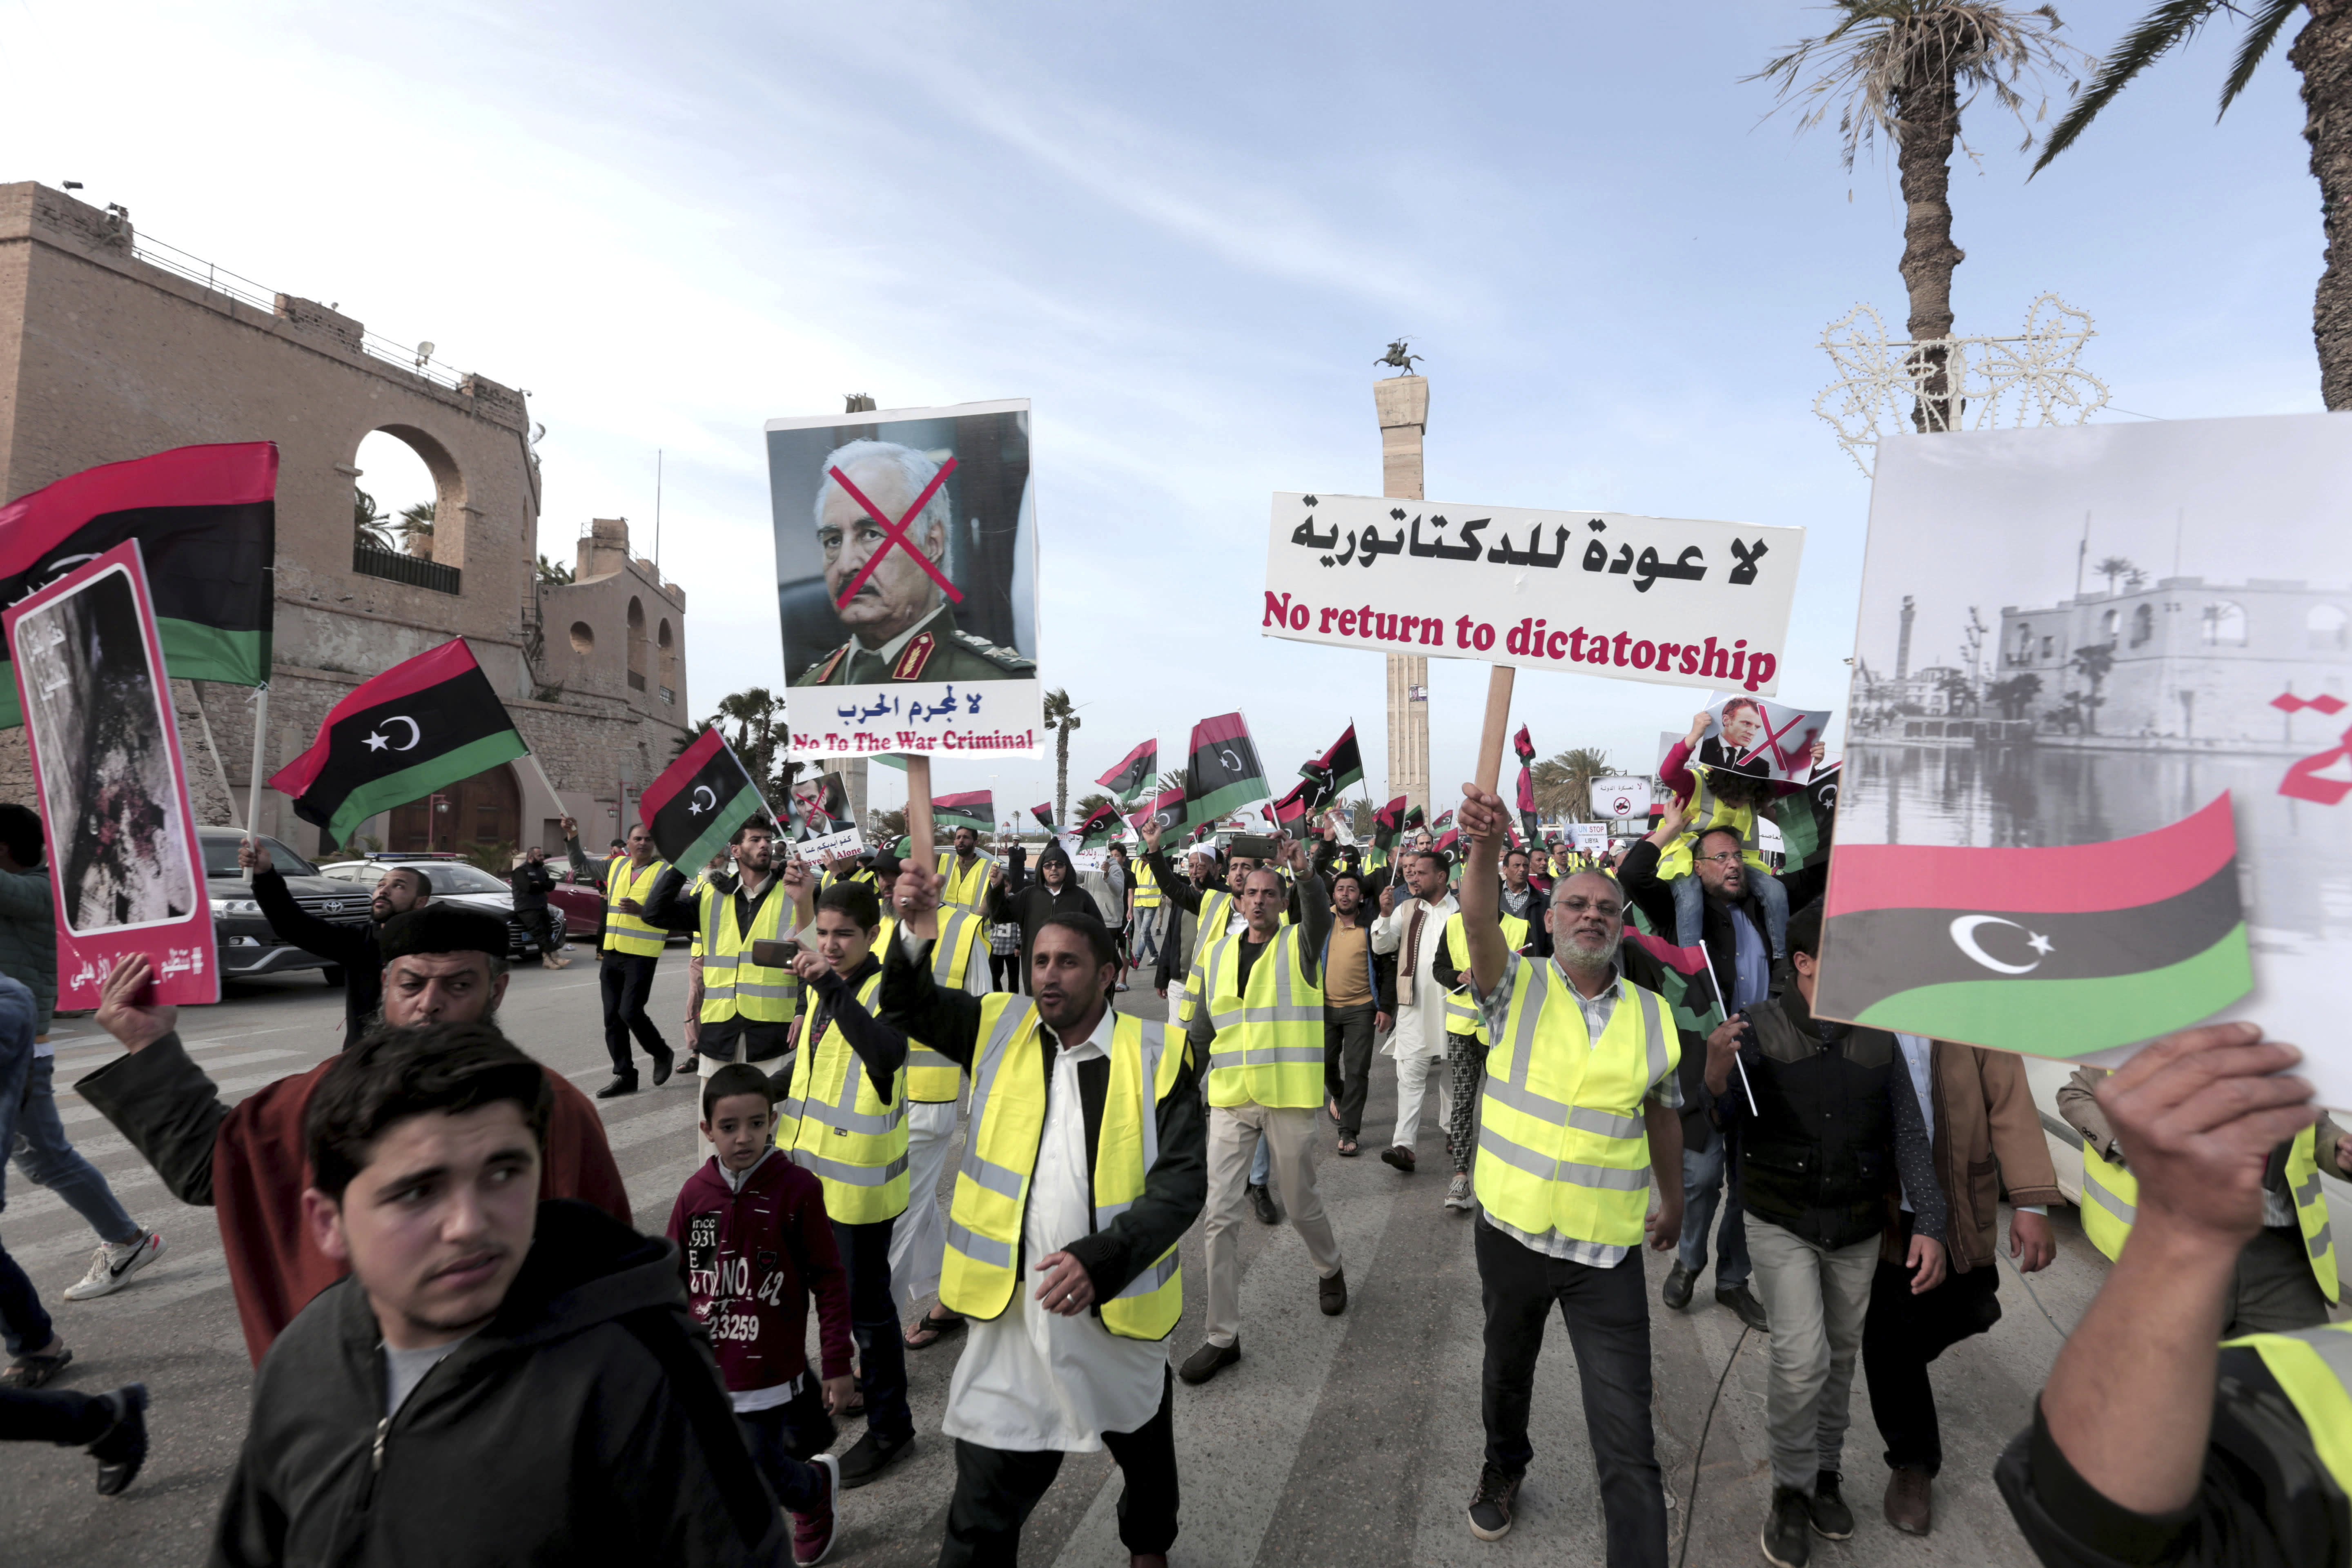 FILE - In this April 19, 2019 file photo, protesters wear yellow vests at a protest as they wave national flags and chant slogans against Libya's Field Marshal Khalifa Hifter, in Tripoli, Libya. Officials in Libya's U.N.-backed administration say they plan to present evidence to Moscow of Russian mercenaries fighting alongside their adversary in their country's war. Libyan officials say up to 800 fighters from the Russian private security contractor Wagner Group have joined the forces of Hifter, the commander of forces battling for months trying to capture Libya's capital, Tripoli. (AP Photo/Hazem Ahmed, File)